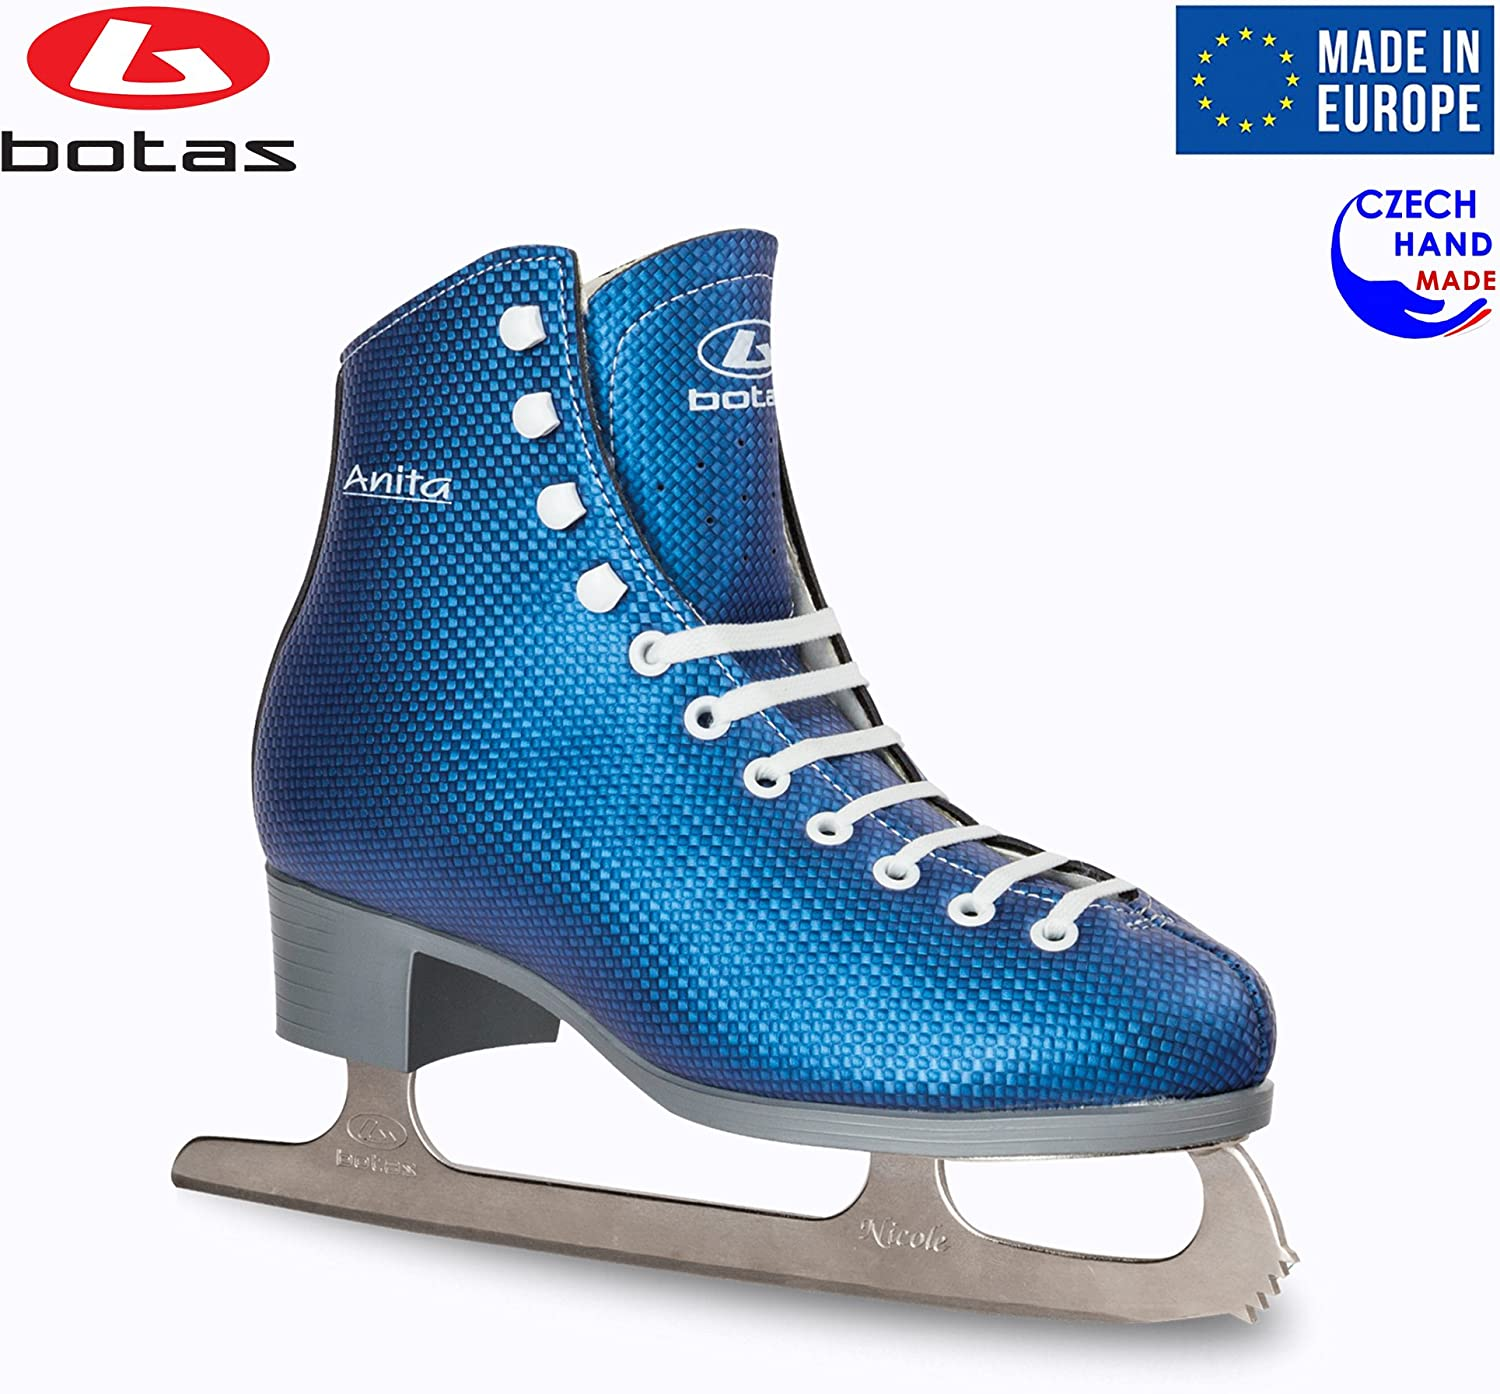 Botas - Model: Anita/Made in Europe (Czech Republic) / Figure Ice Skates for Women, Girls/Nicole Blades/Blue Color